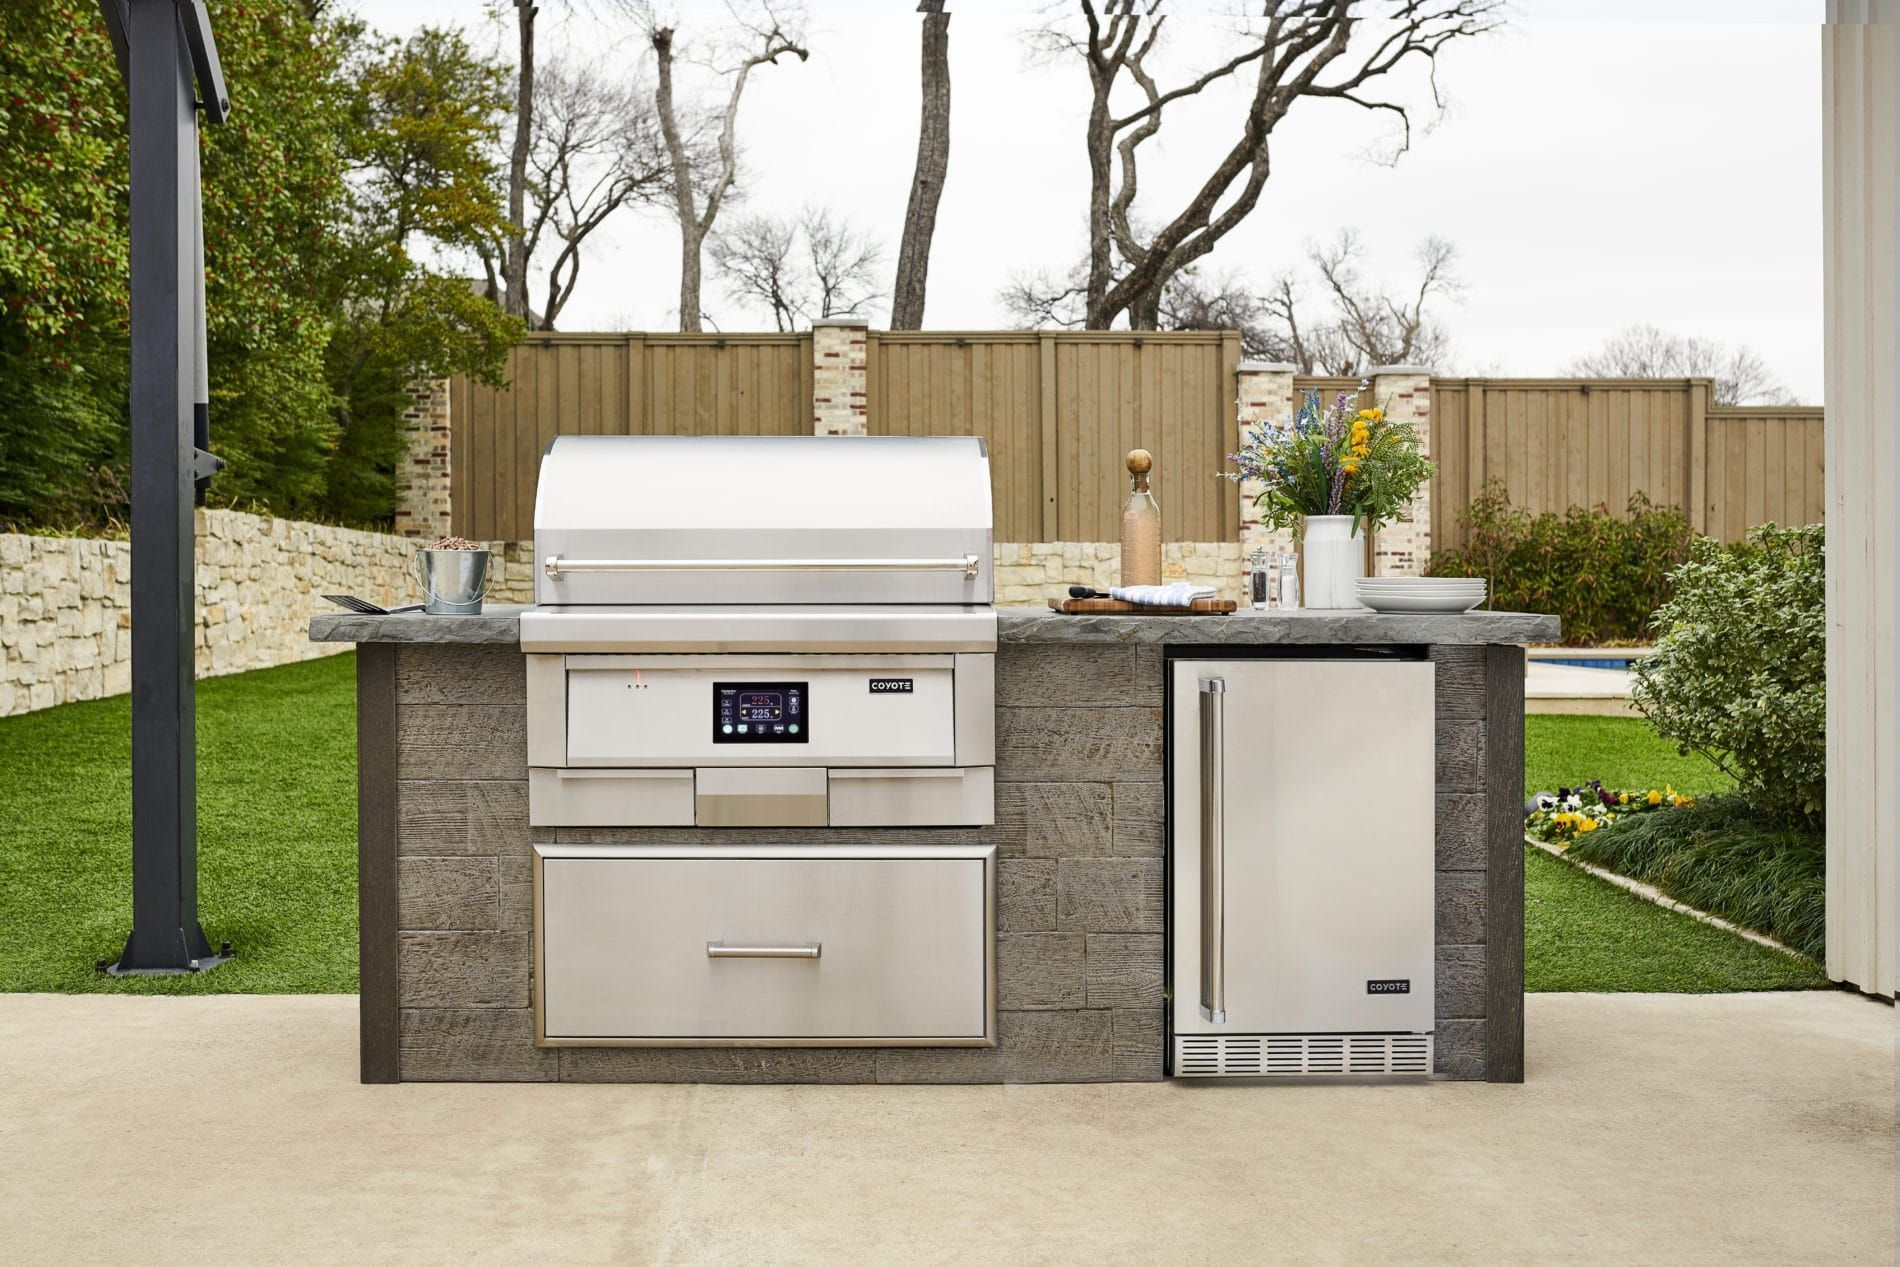 Grill Smoke Sear Bake With Your Outdoor Kitchen Using One Of The New Pellet Grills From Coyo Luxury Outdoor Kitchen Outdoor Kitchen Outdoor Furniture Decor